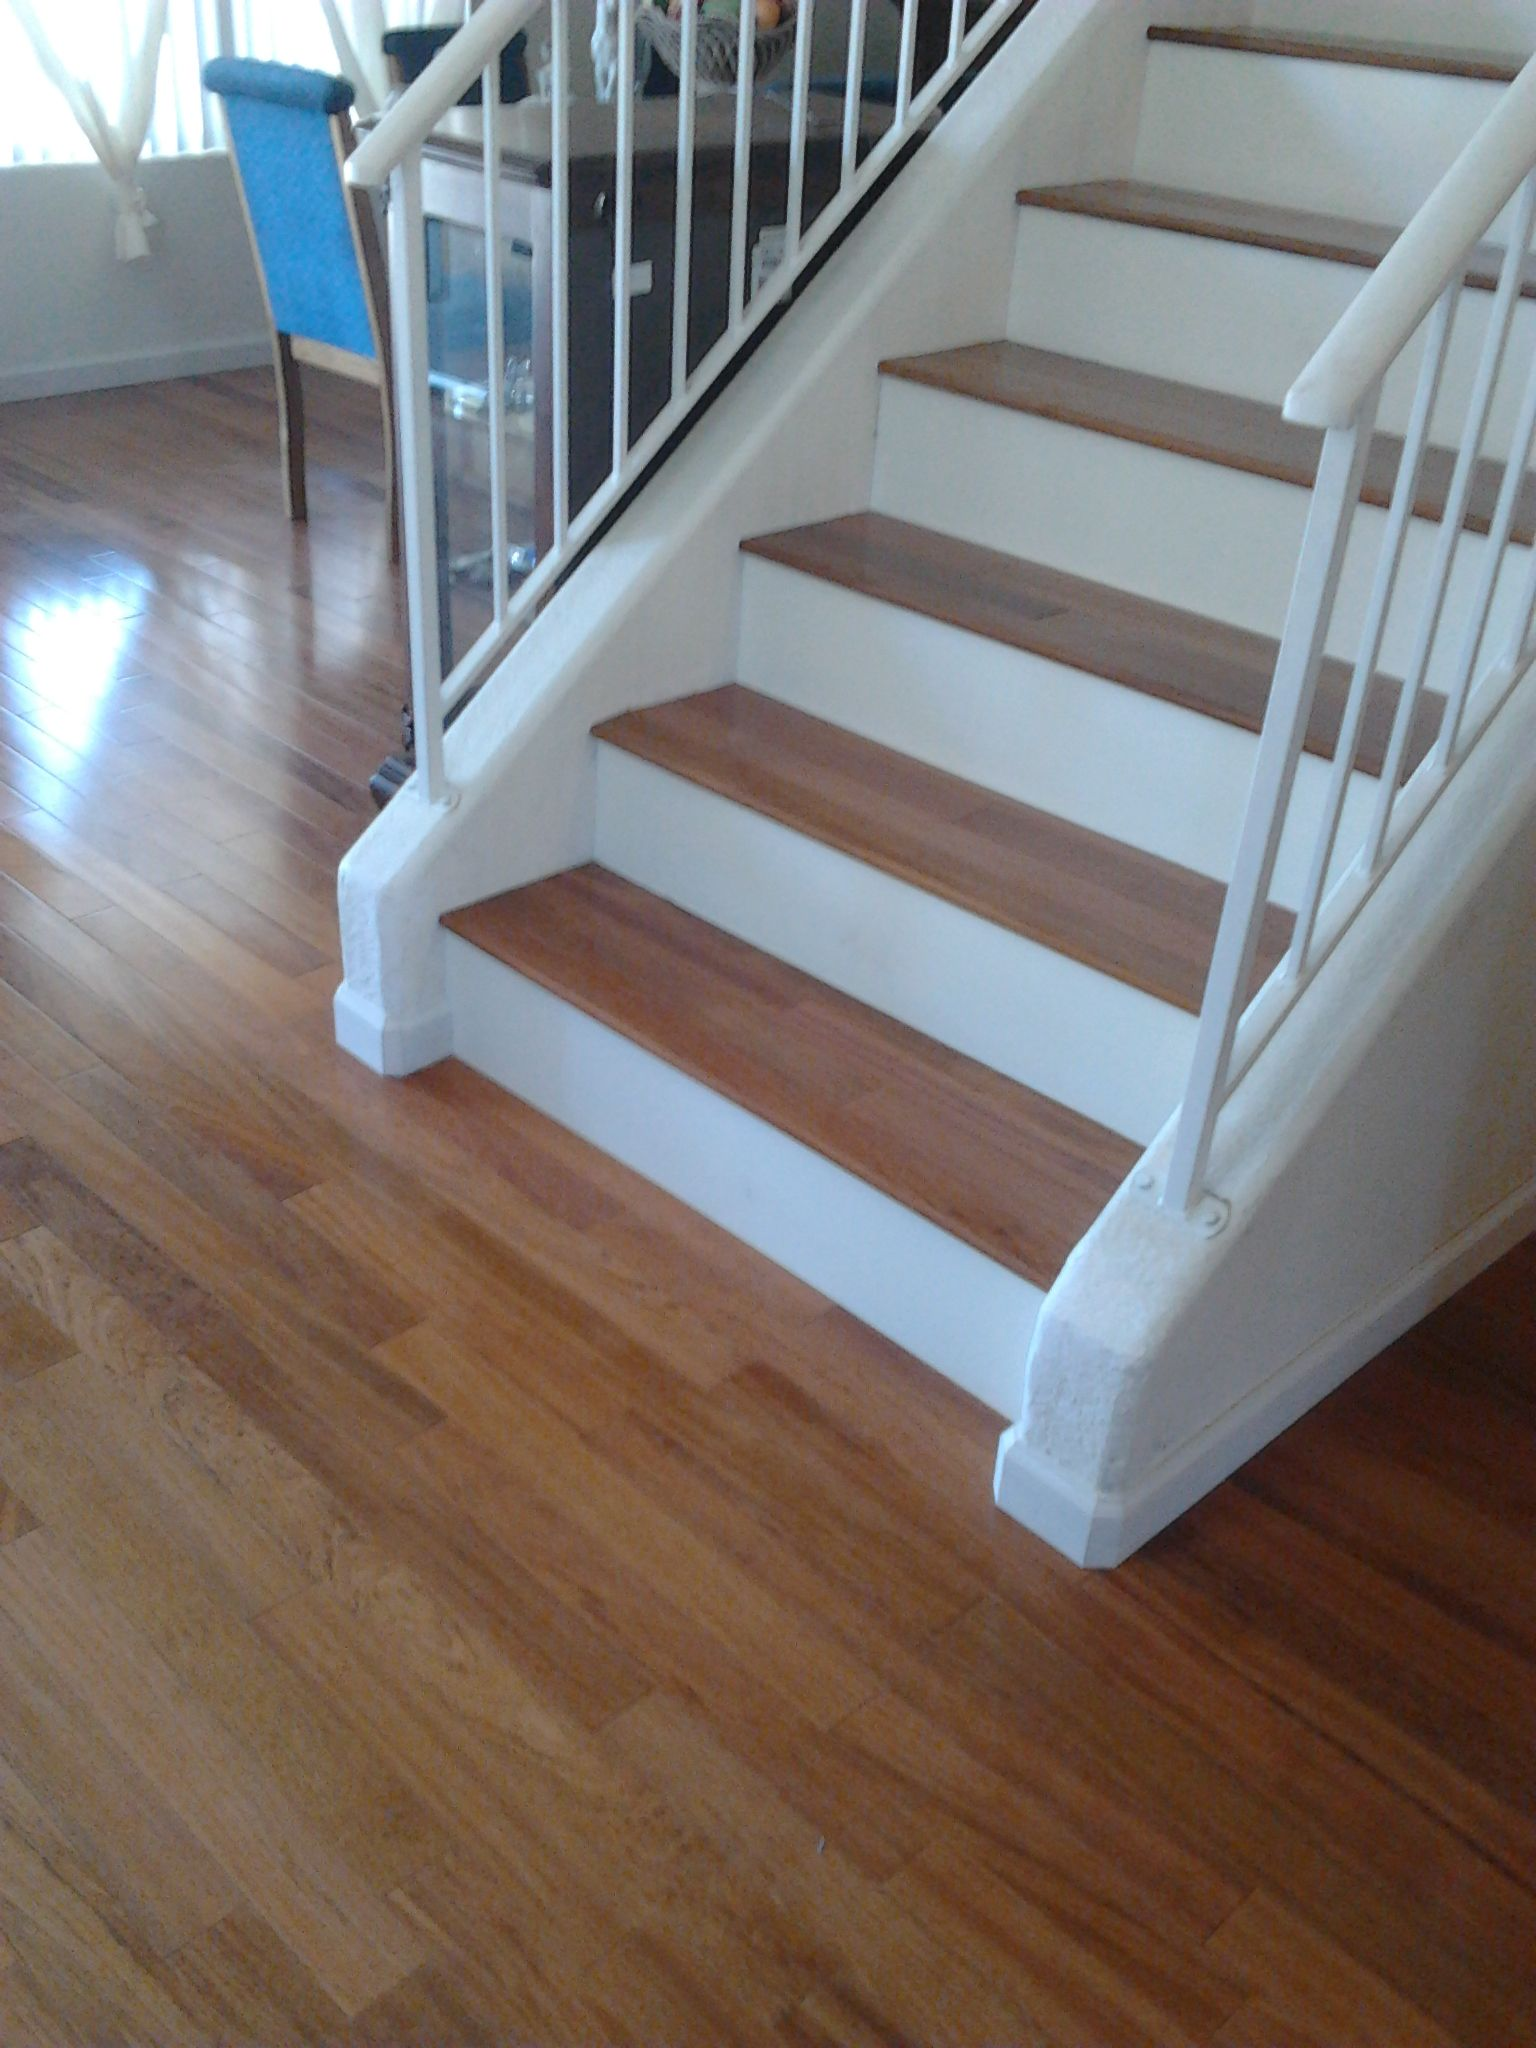 Best Brazilian Cherry Floors Stairs Imageiseverywhere Com 640 x 480